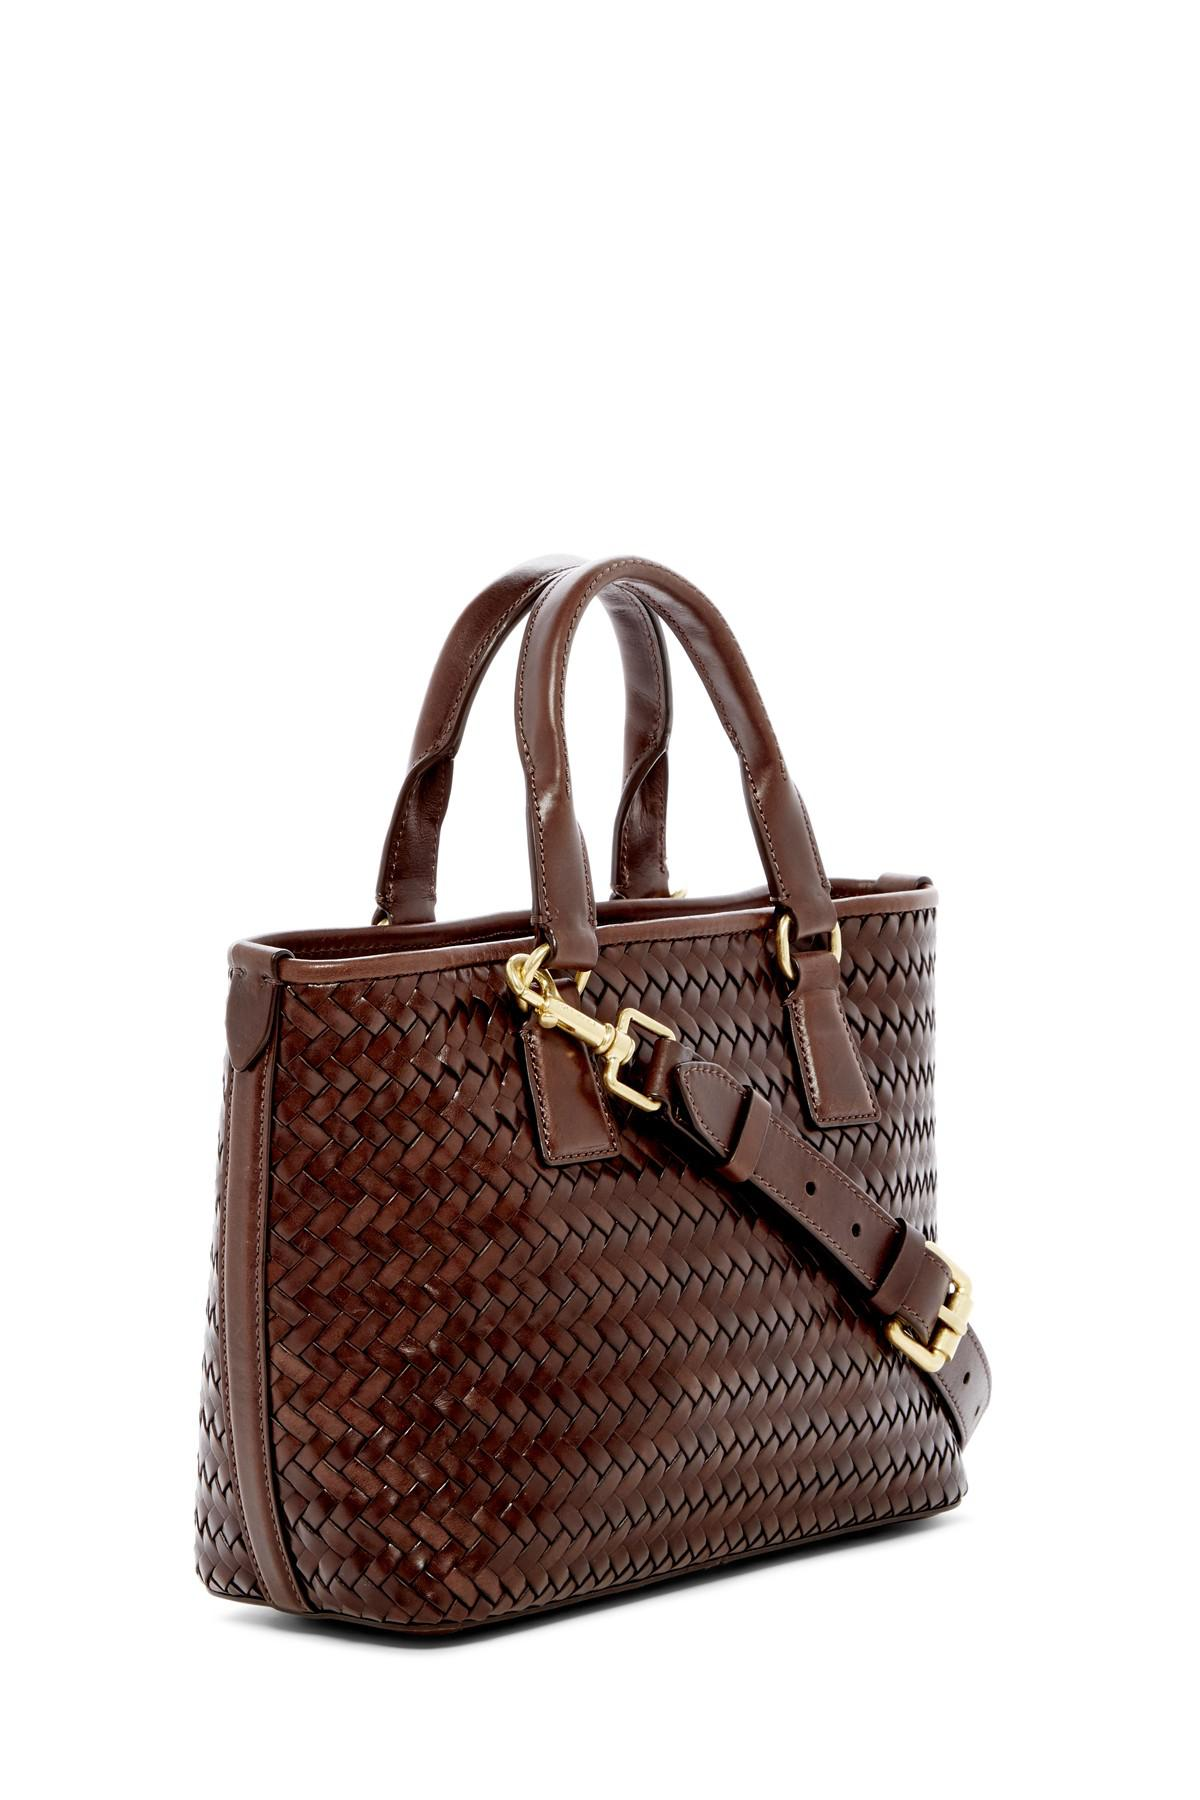 c0bcb5df5d5 Cole Haan Celia Small Woven Leather Tote Bag in Brown - Lyst